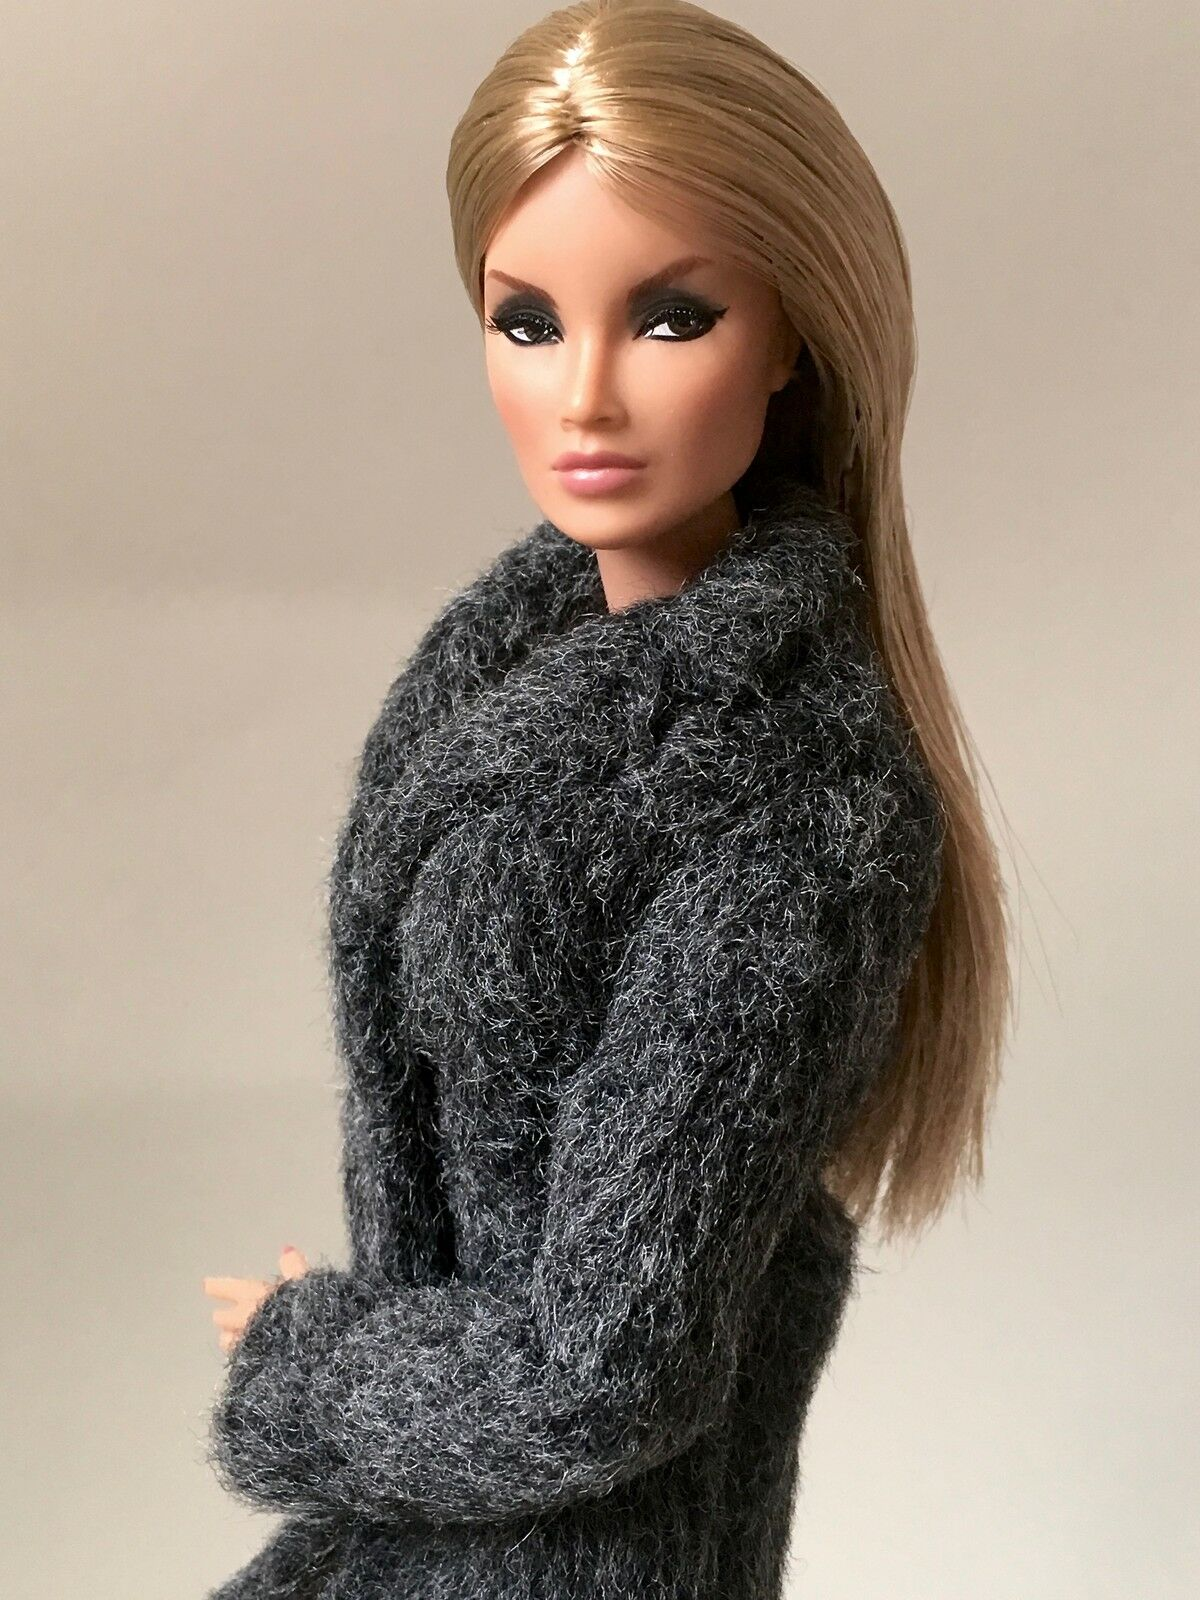 FASHION ROYALTY NU Face 2.0 BE DARING IMOGEN  12  NUDE DOLL